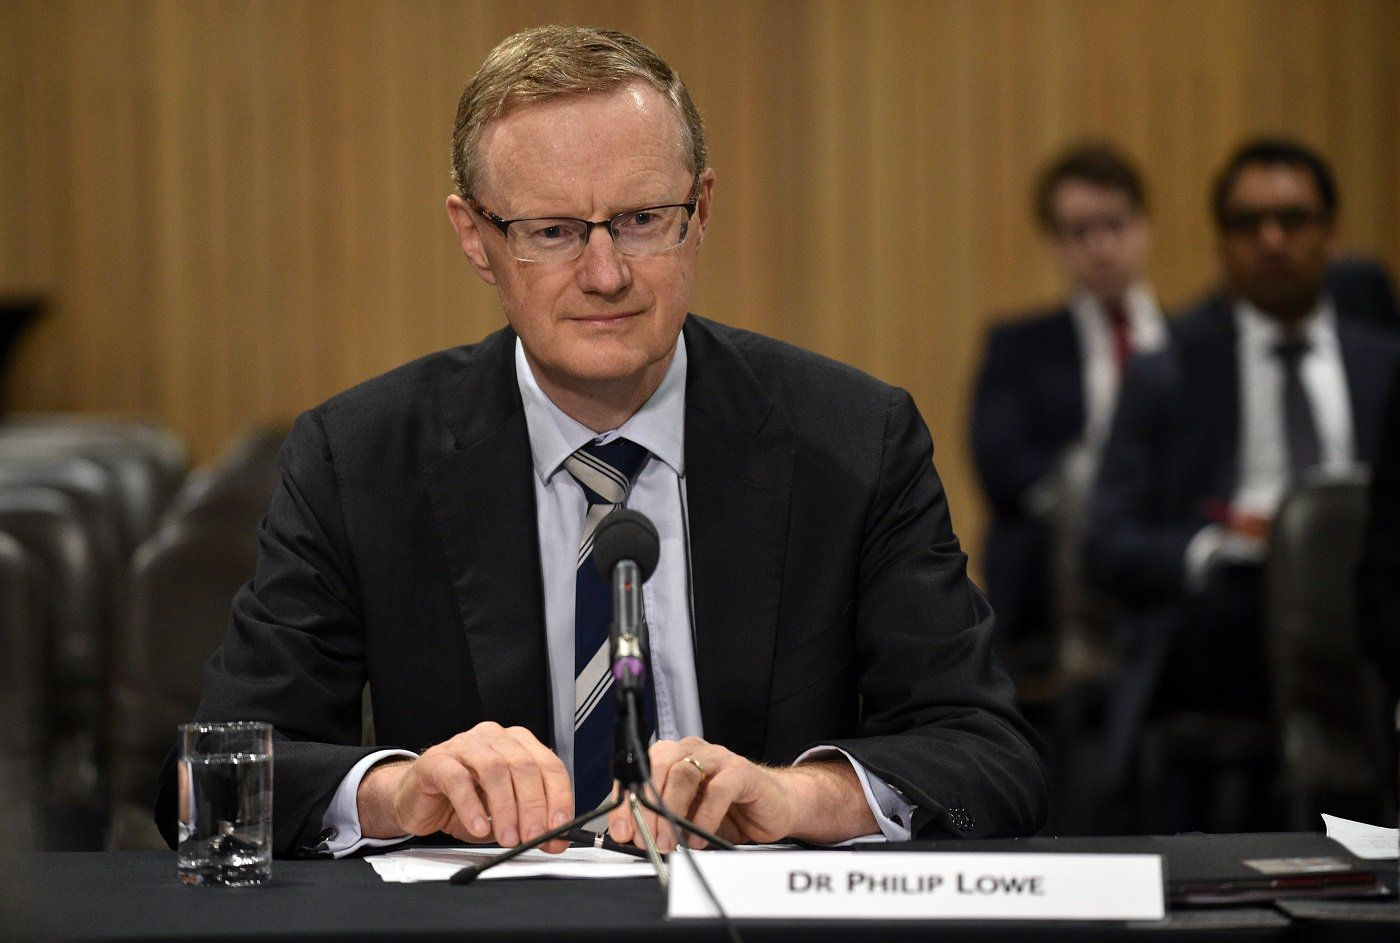 The RBA seems to be running policy on a hunch